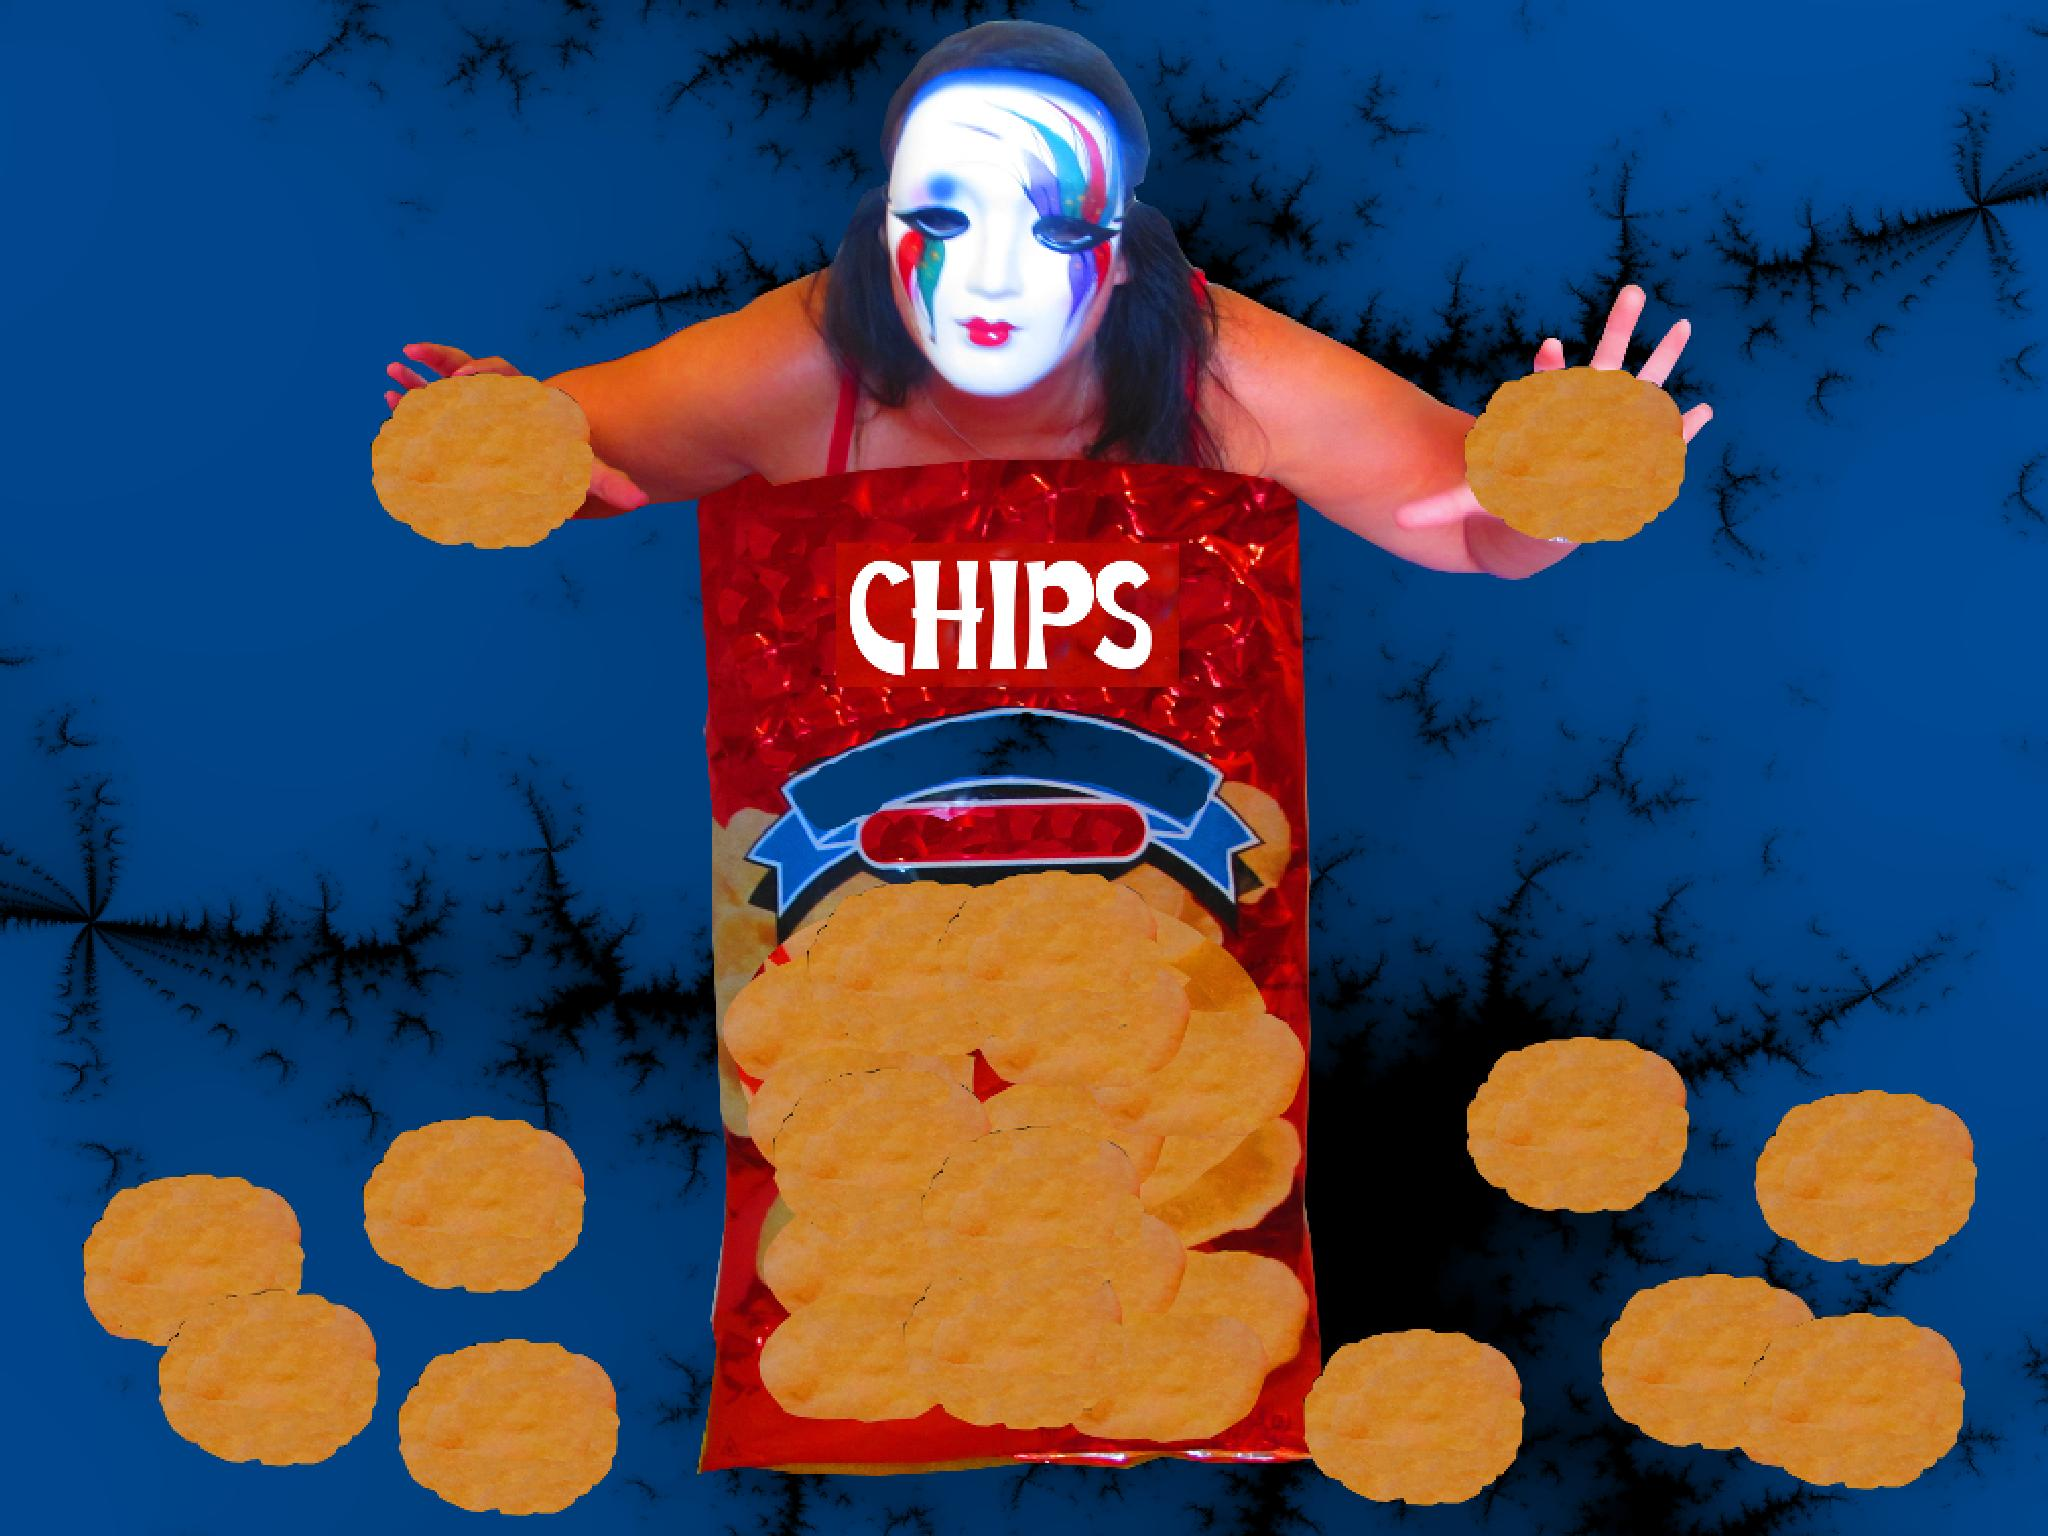 Fat as America - Let the Chips falls by FATasAMERICA